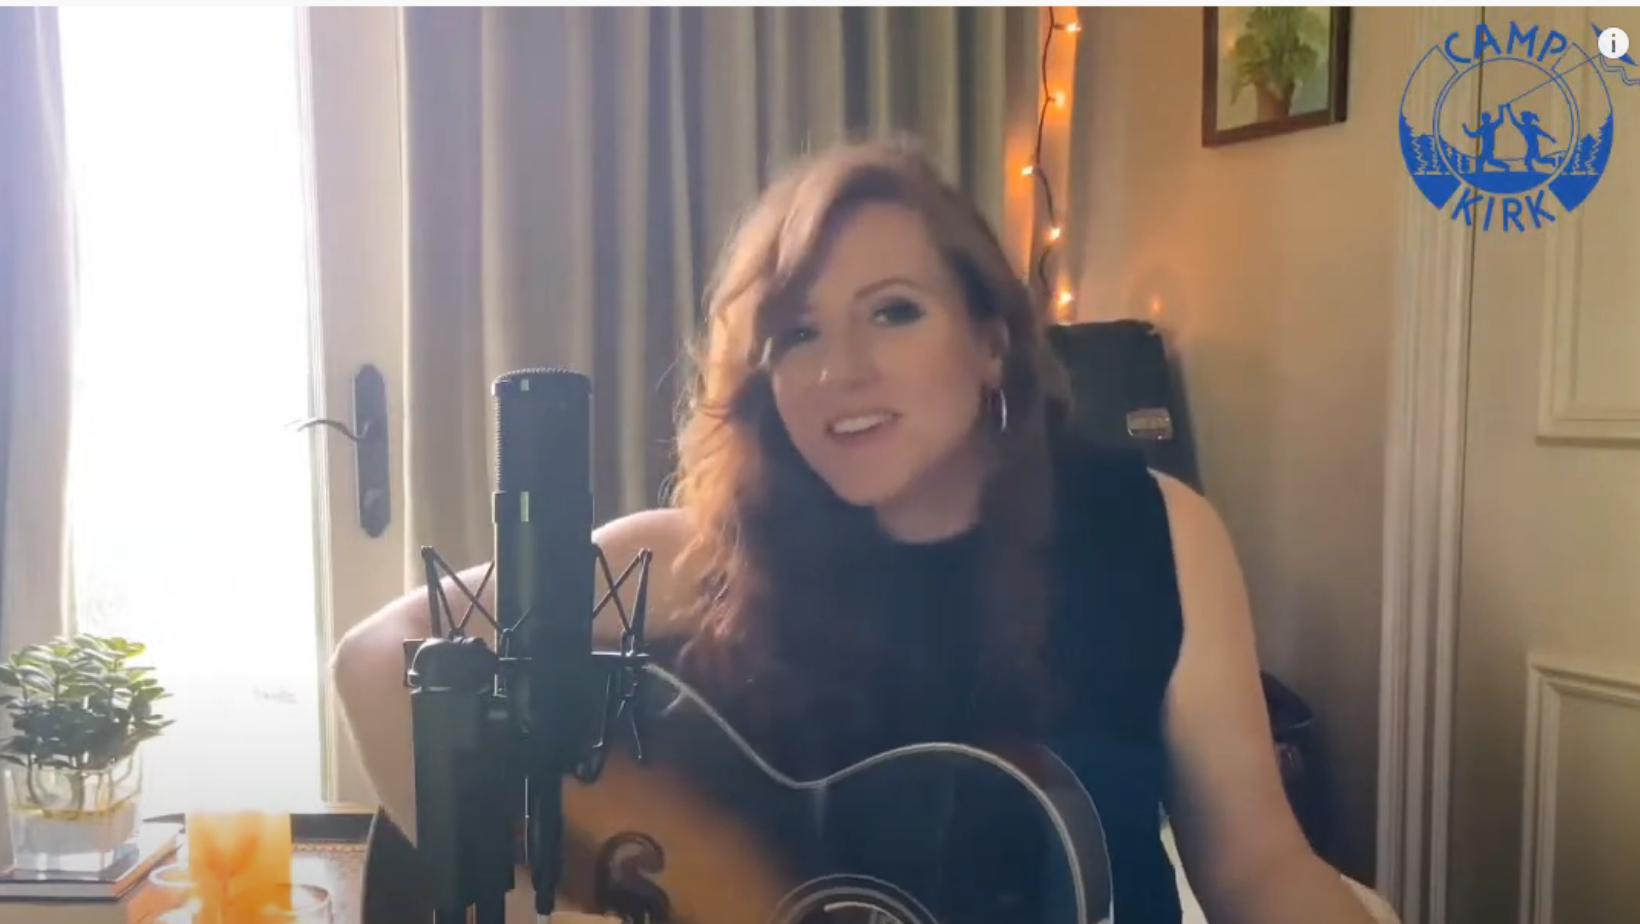 Singer Molly Brown is smiling and plays her guitar. She is sitting in front of a microphone. There is a table to her right with a small house plant, and a drink.